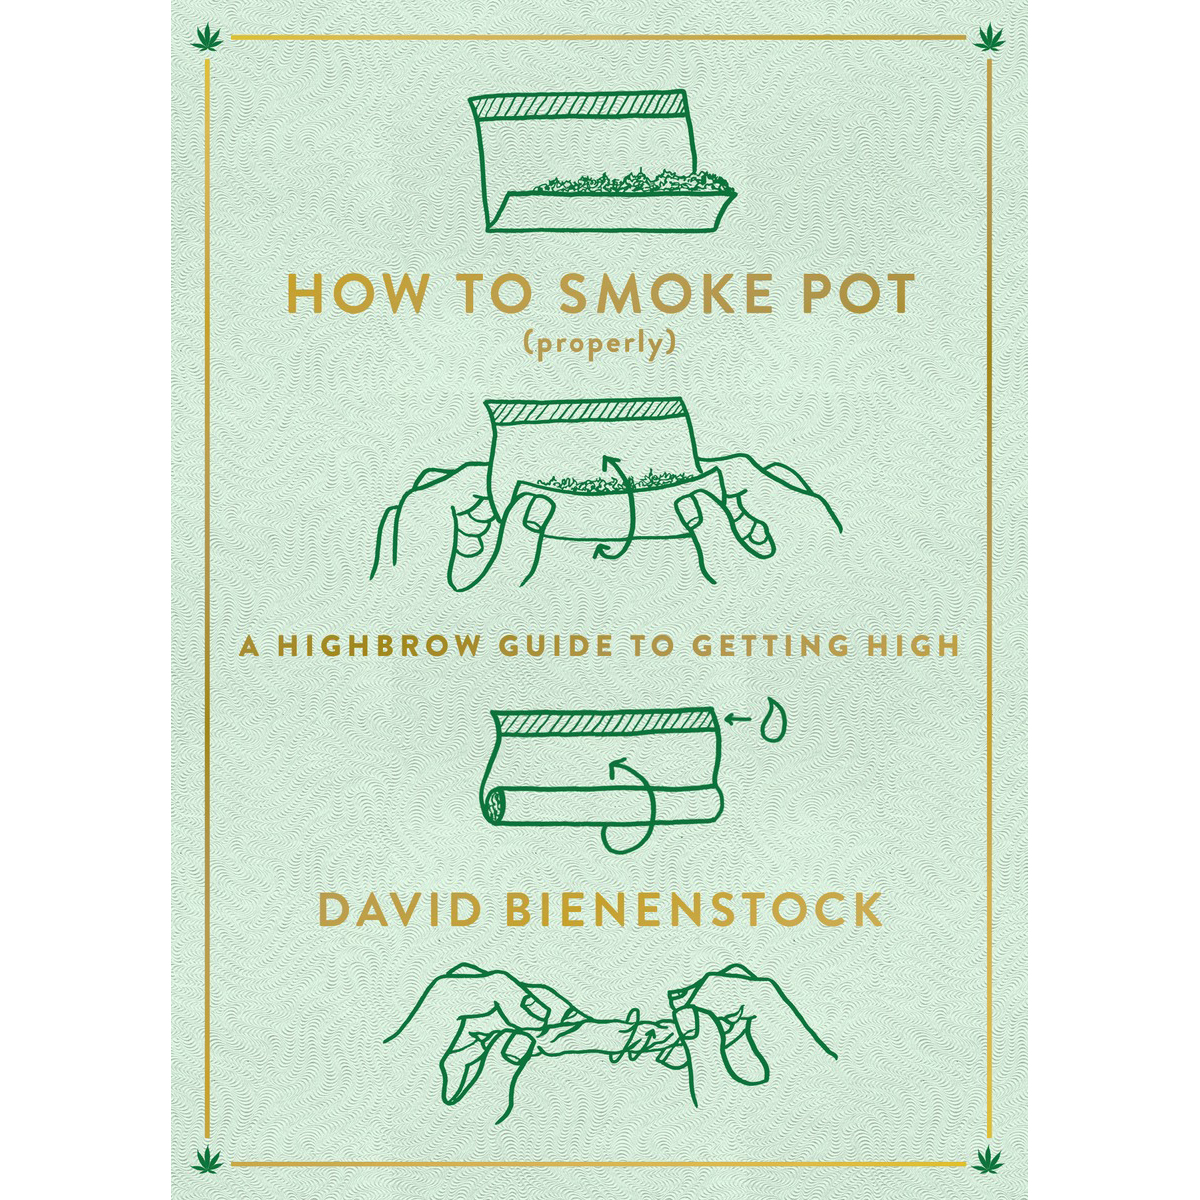 HOW TO SMOKE POT FWX